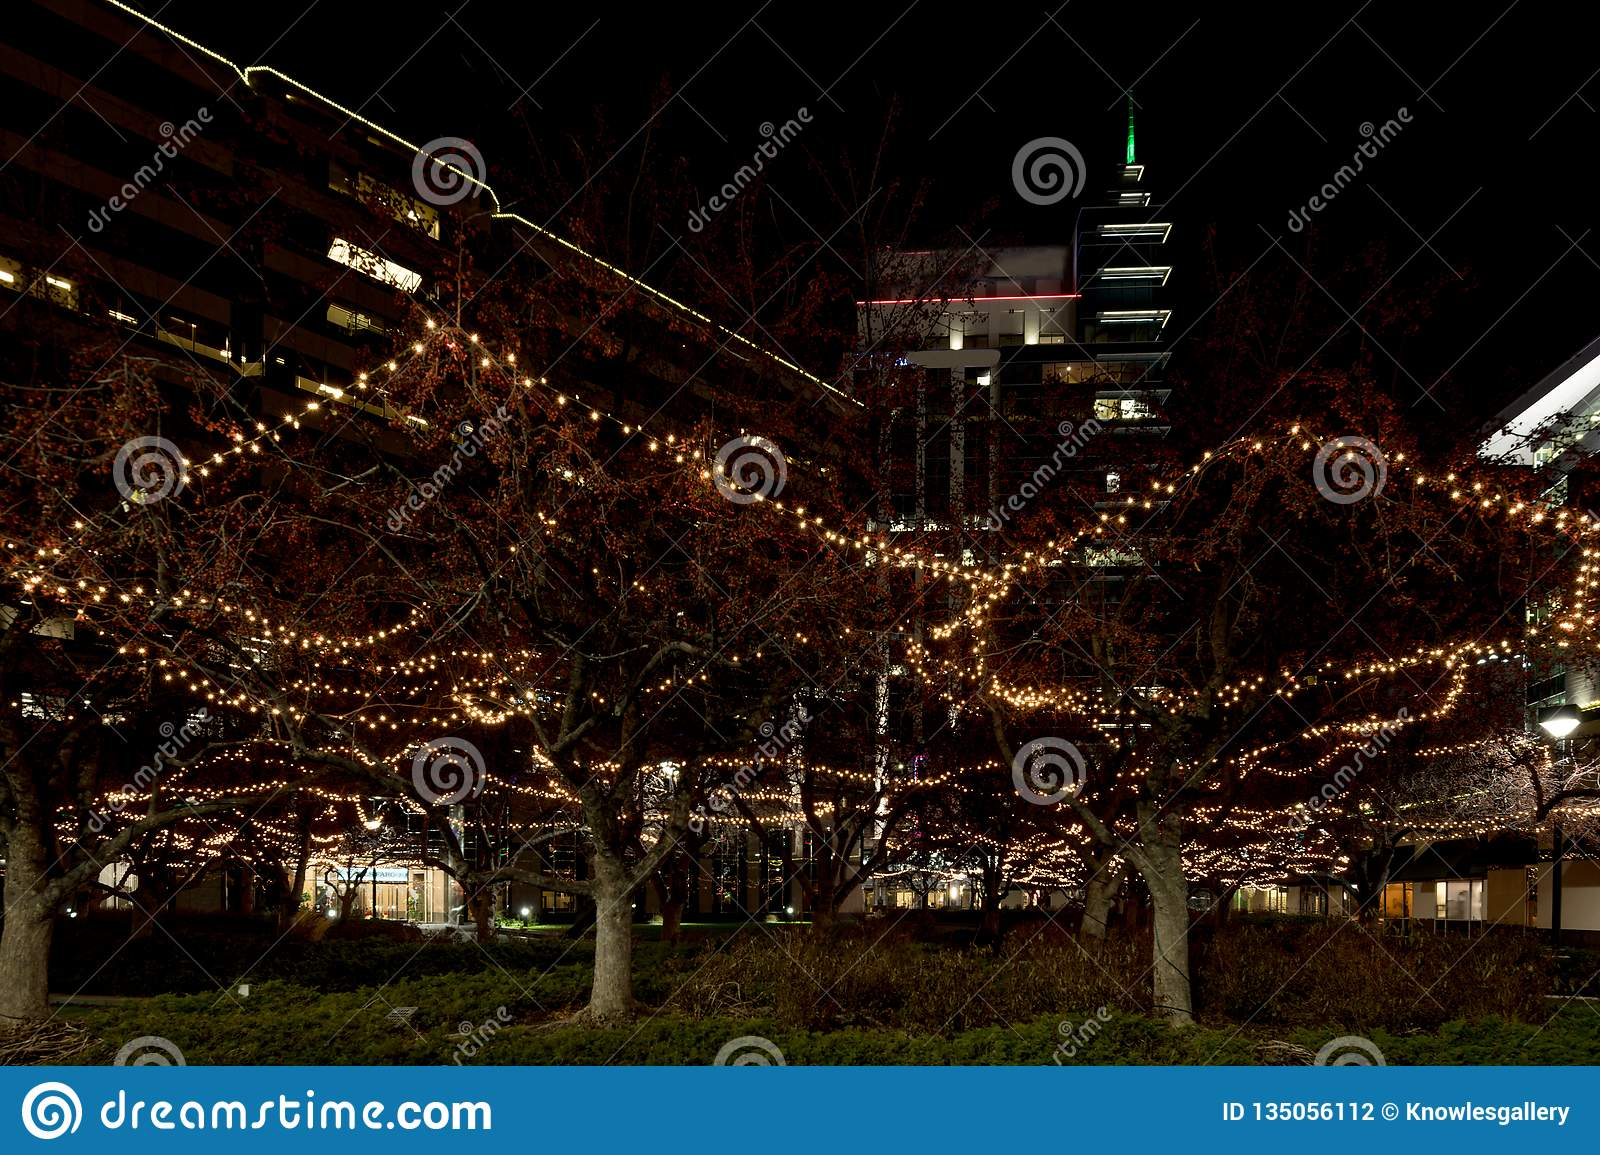 Christmas Lights Boise.Boise Grove Square With Tall Buildings And Christmas Light